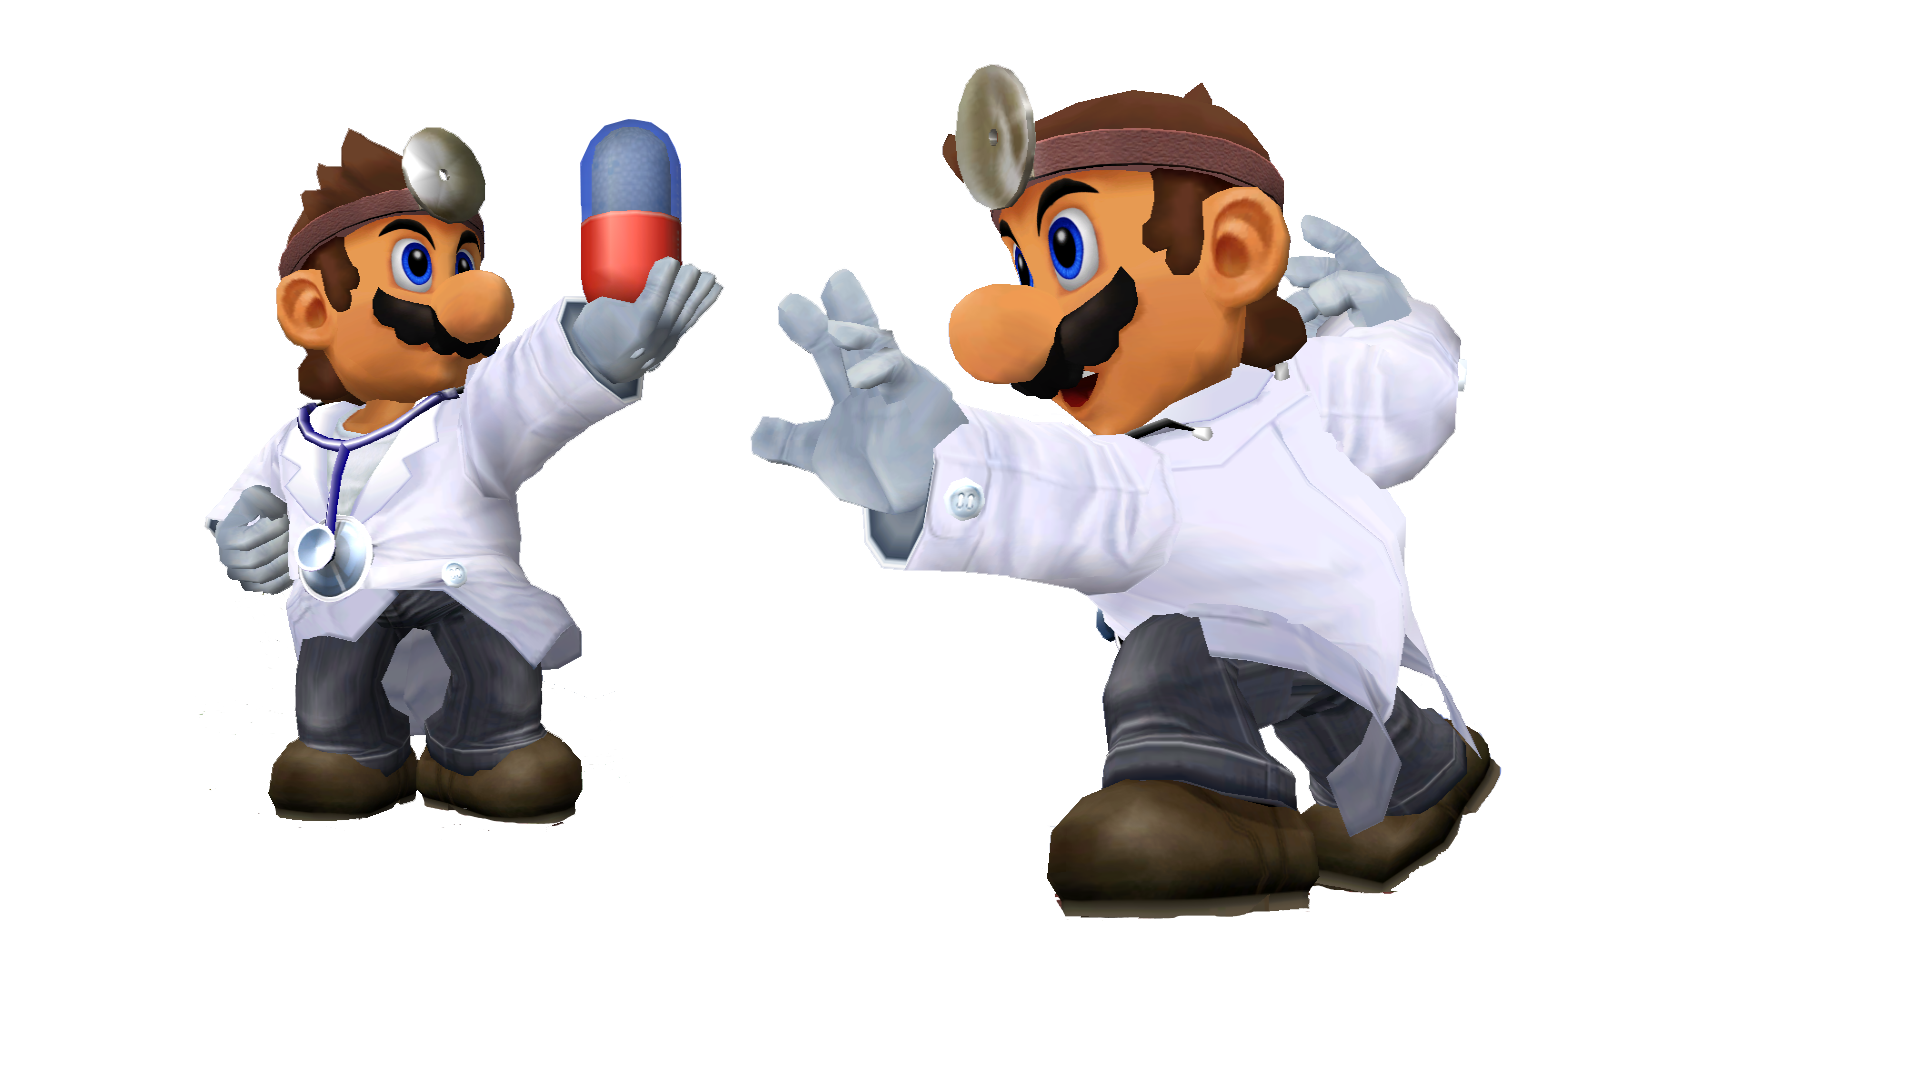 Dr mario render by. Fight clipart aggression